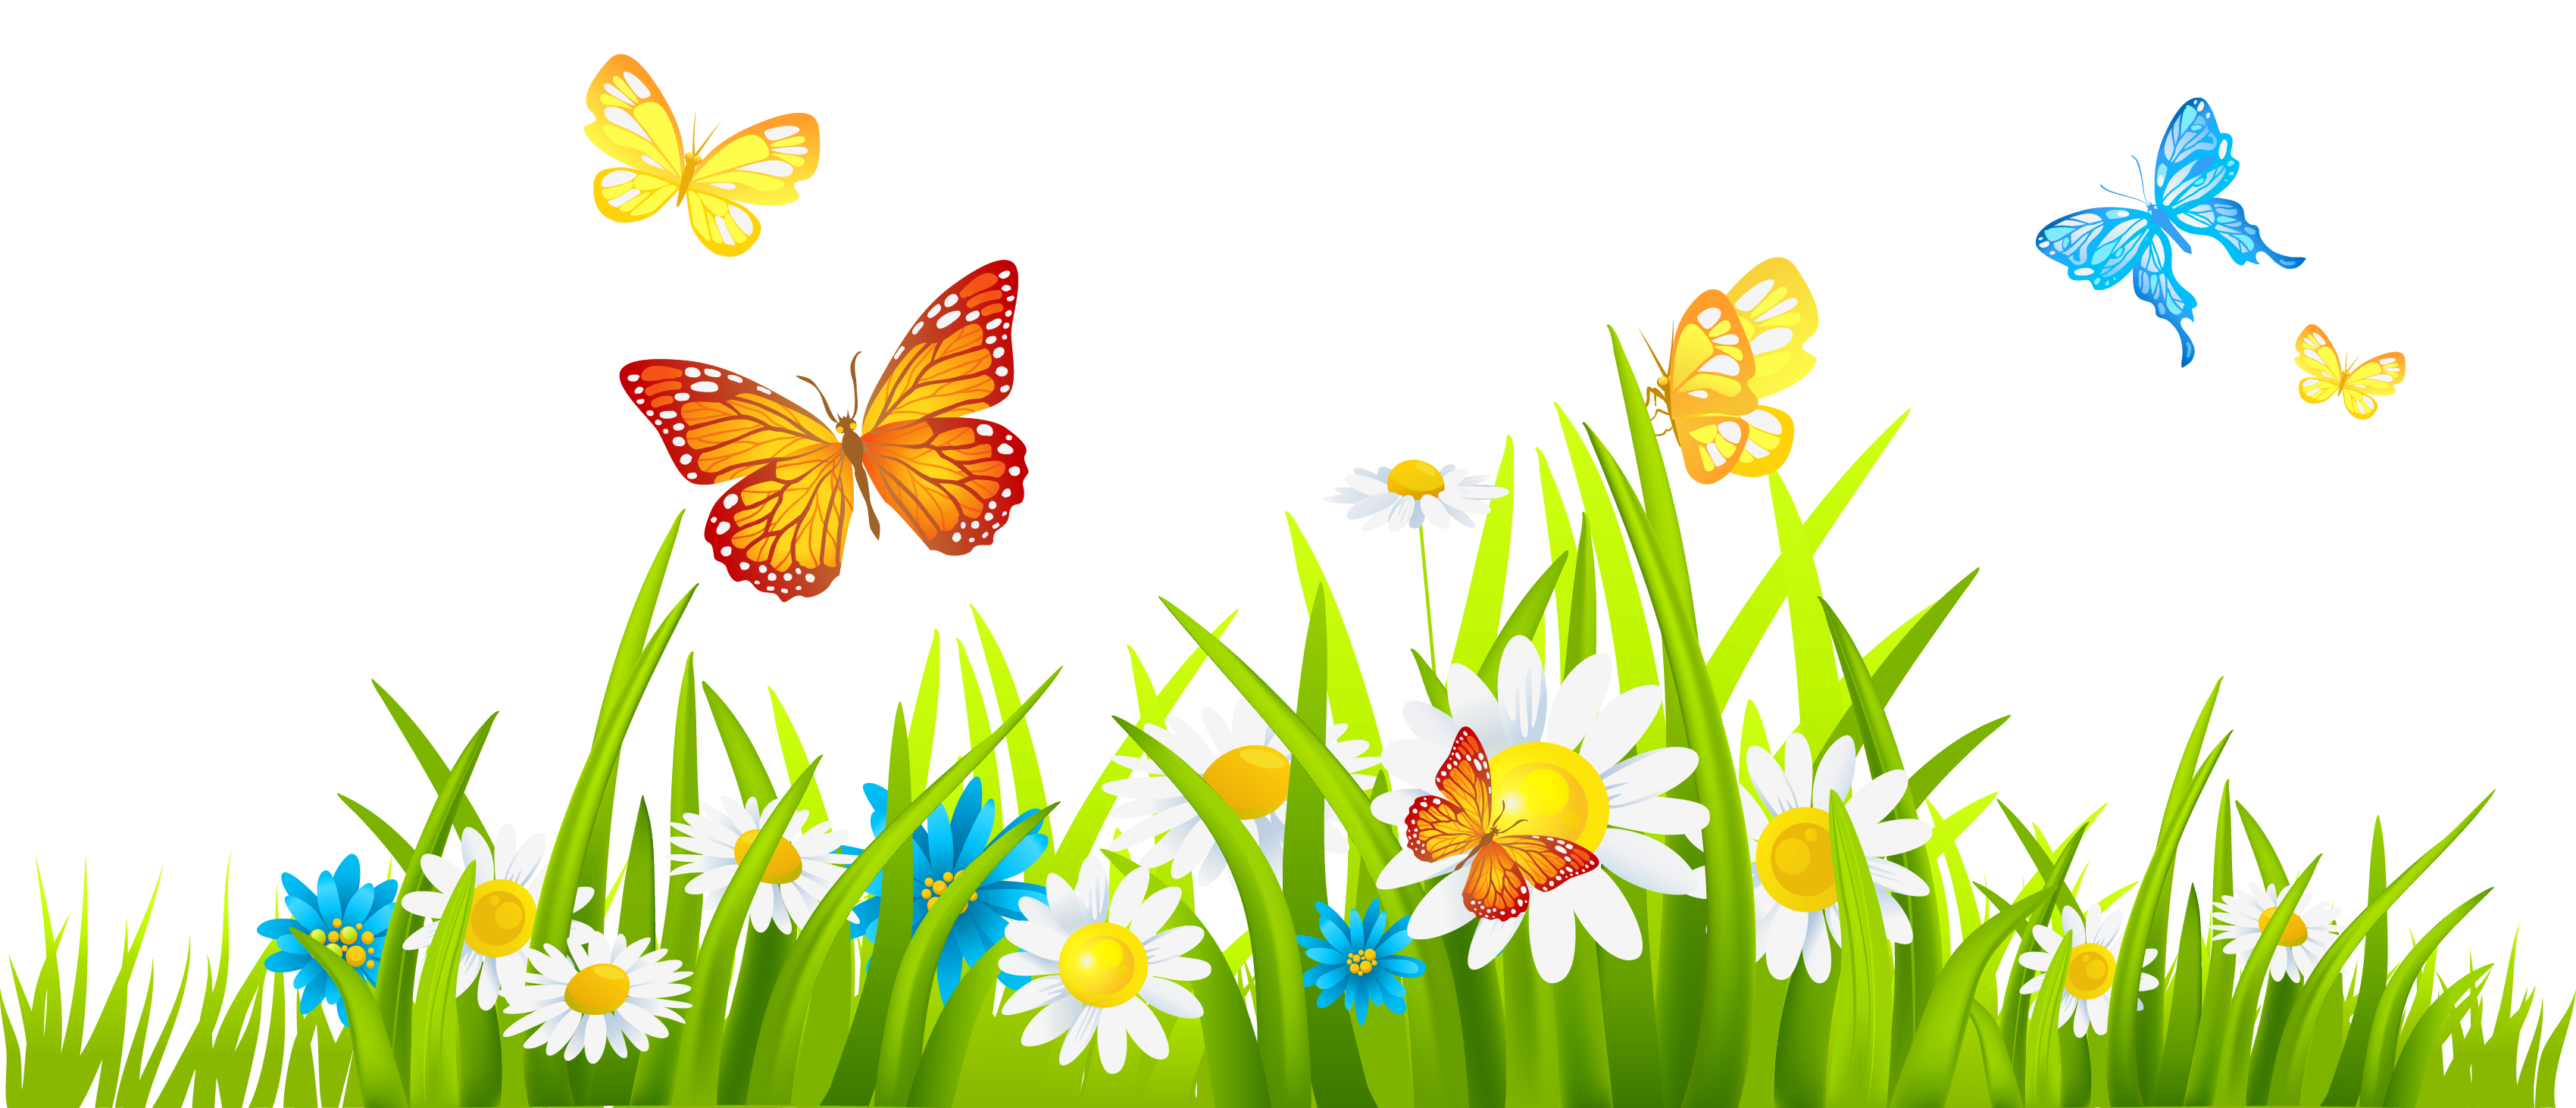 Gardening clipart beautiful surroundings.  collection of garden